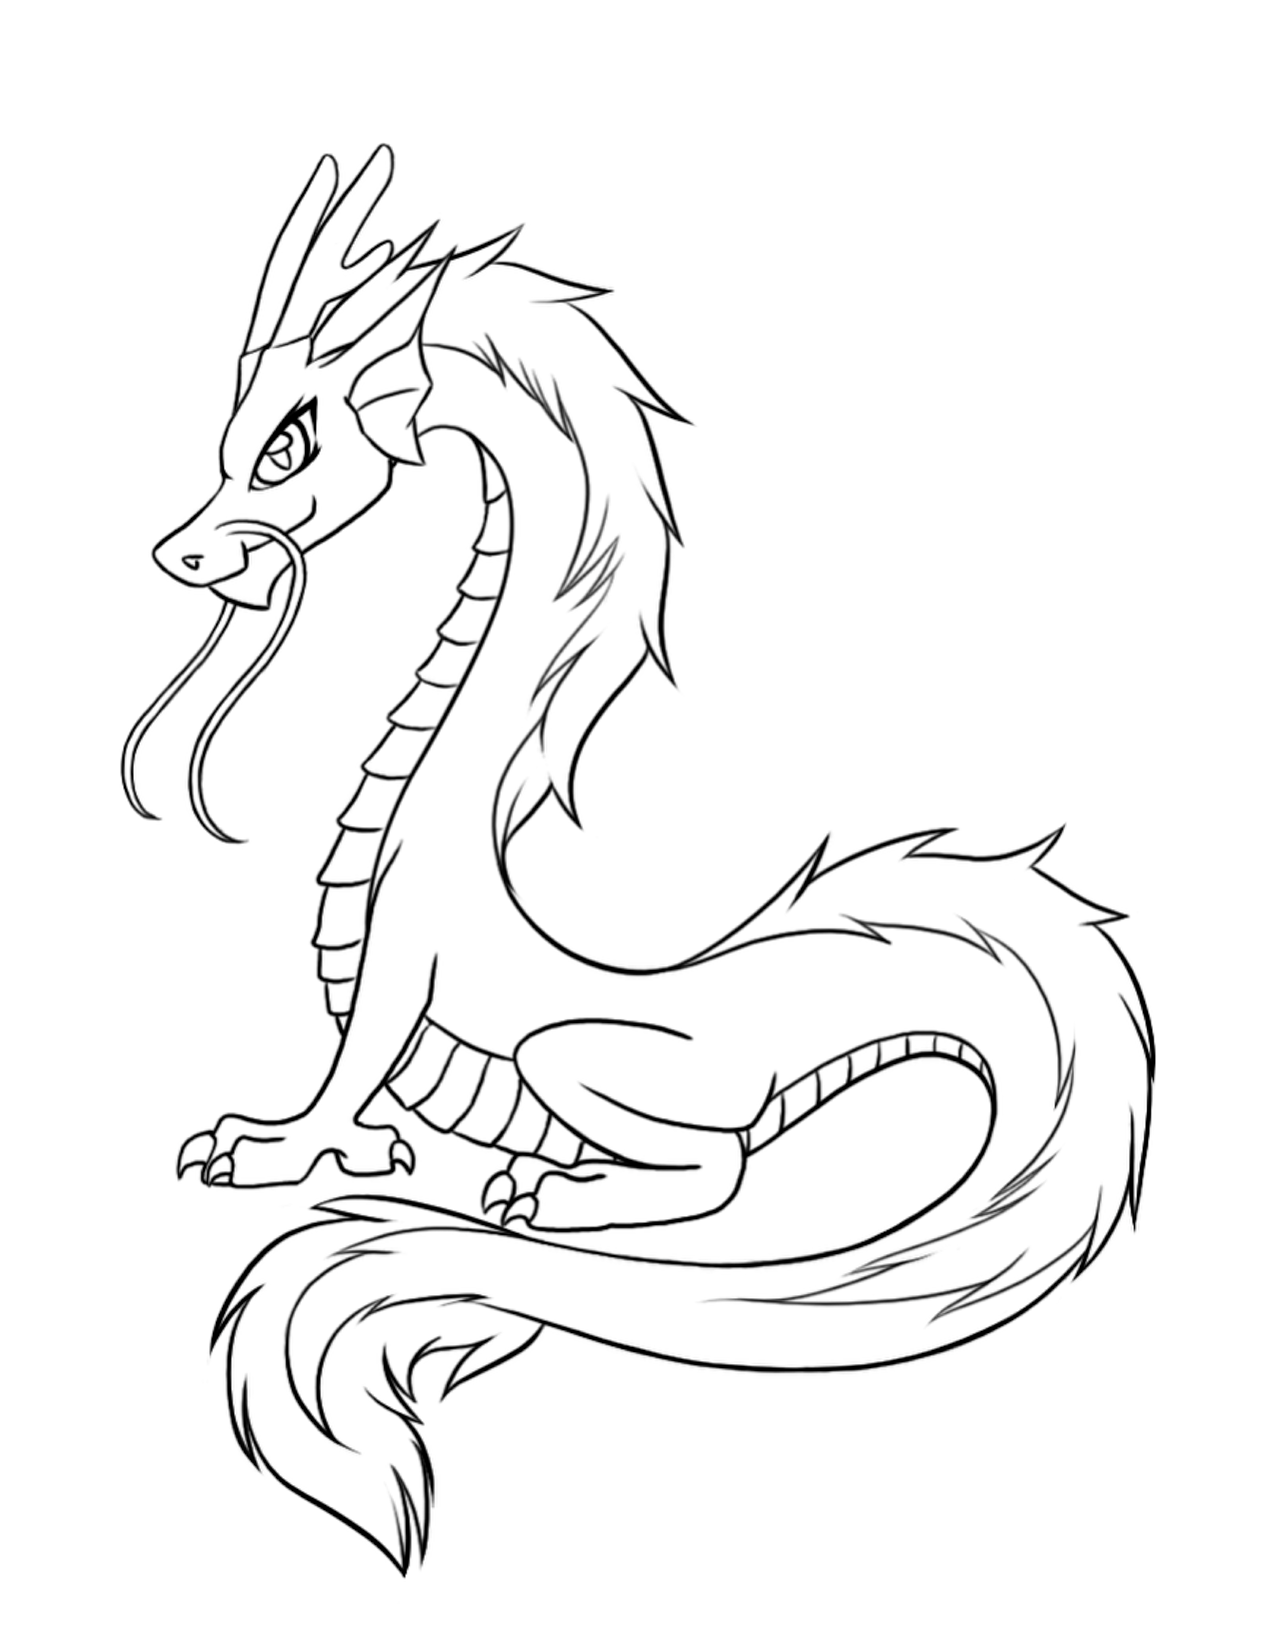 1275x1650 Coloring Pages Pretty Coloring Pages Draw A Simple Dragon Cool